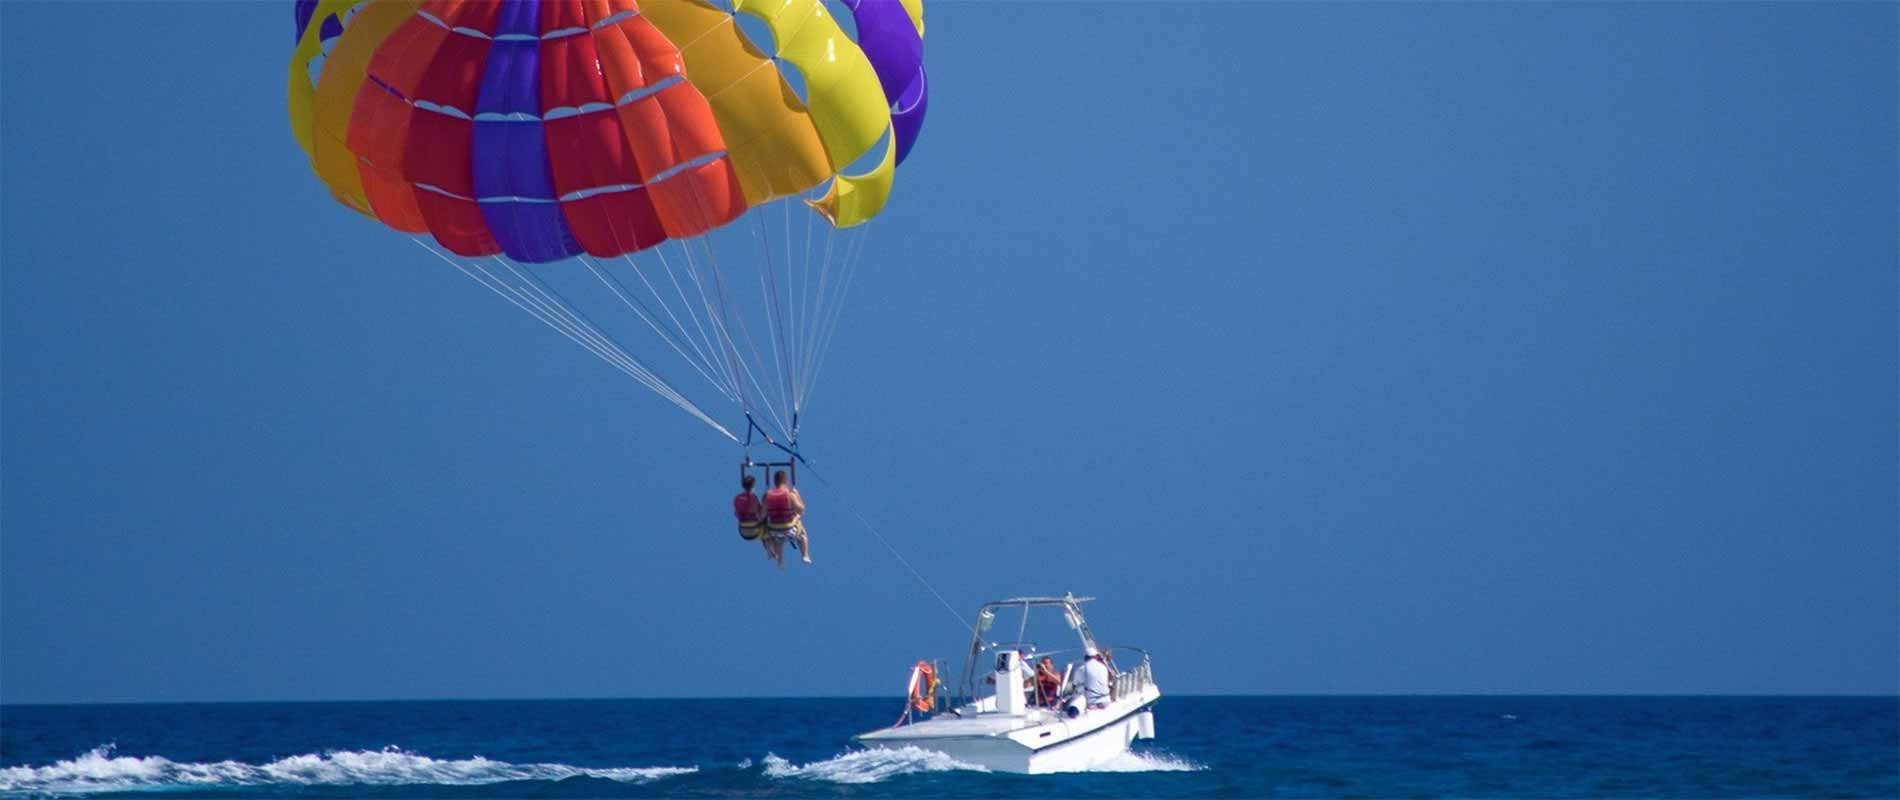 Parasailing in St Kitts